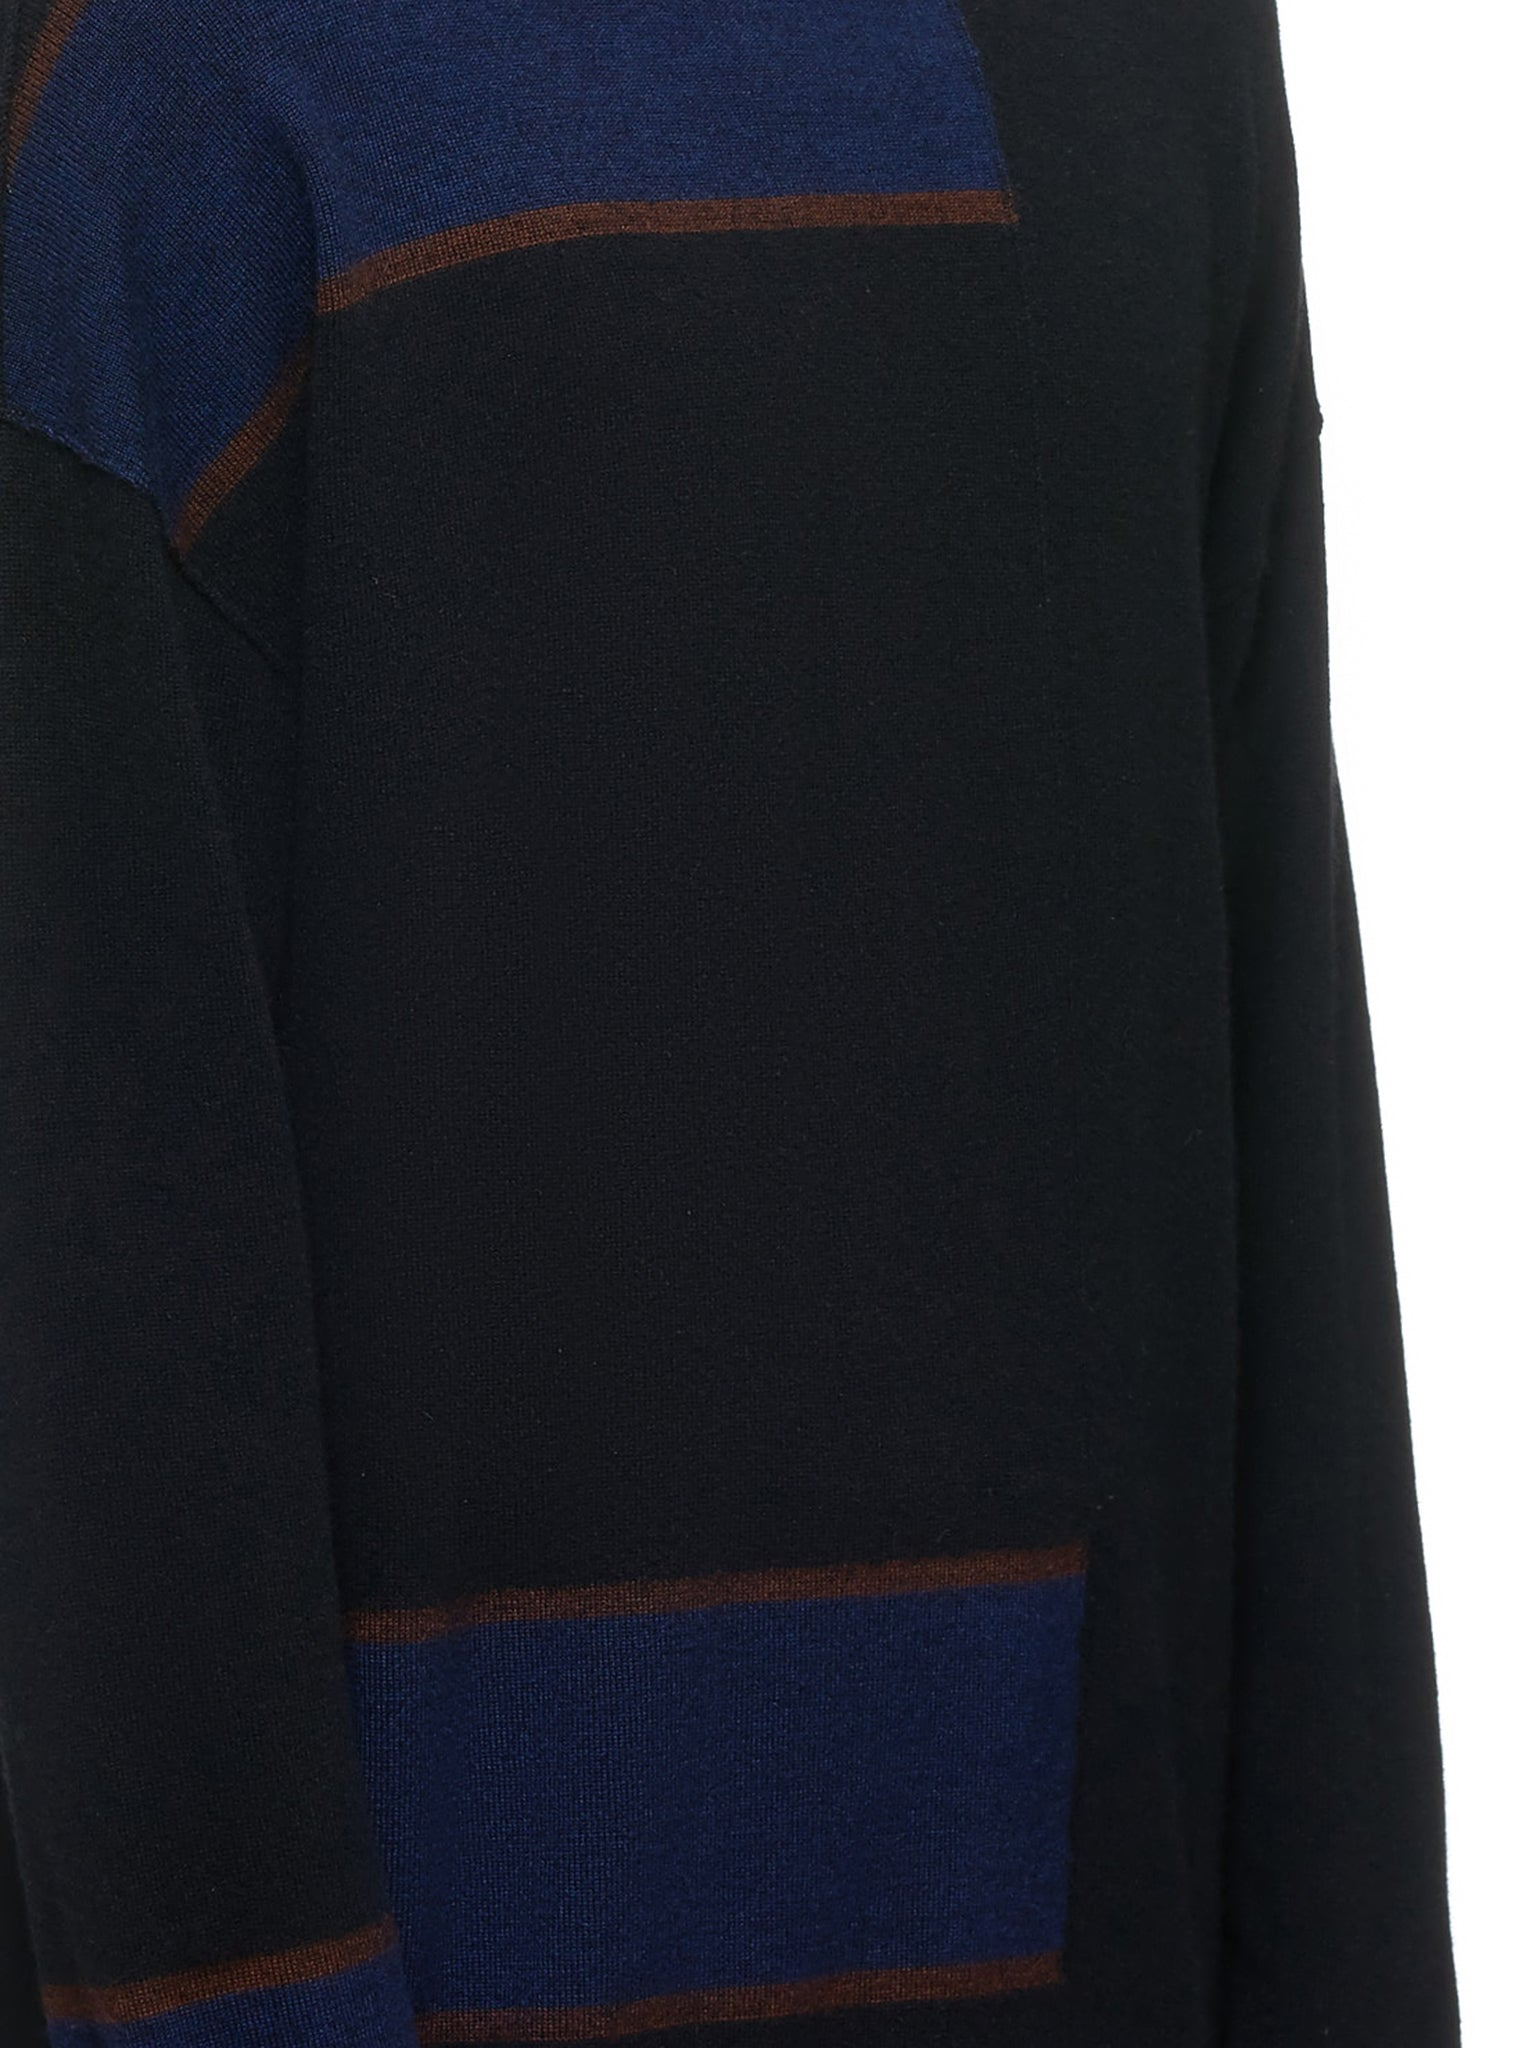 Ziggy Chen Sweater - Hlorenzo Detail 2